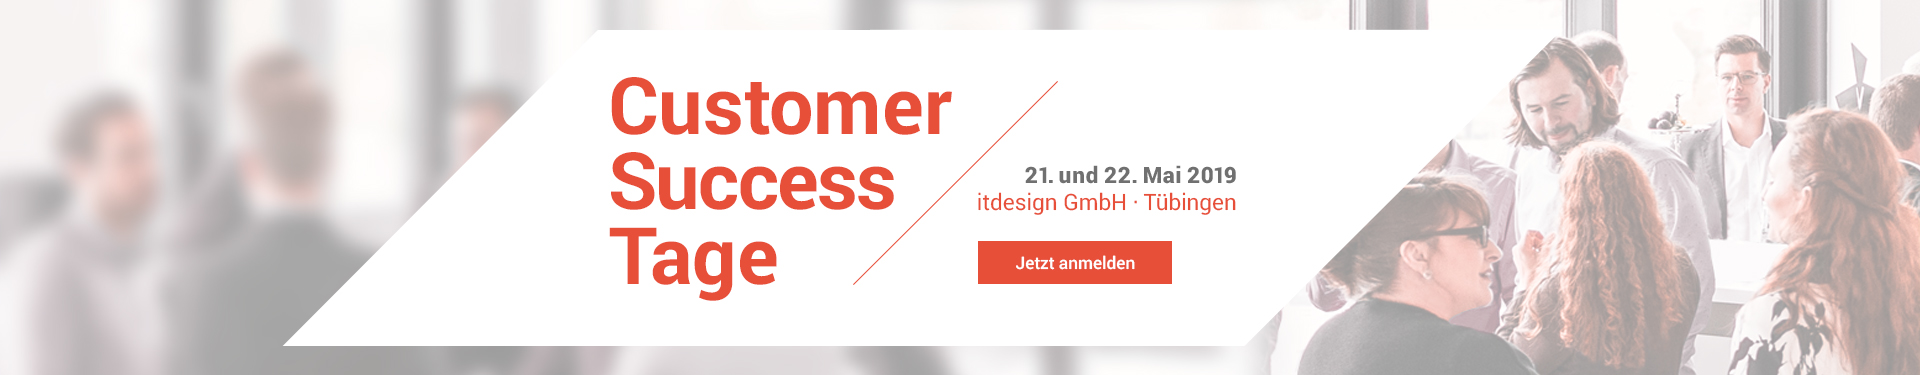 Customer Success Tage am 21. und 22. Mai 2019